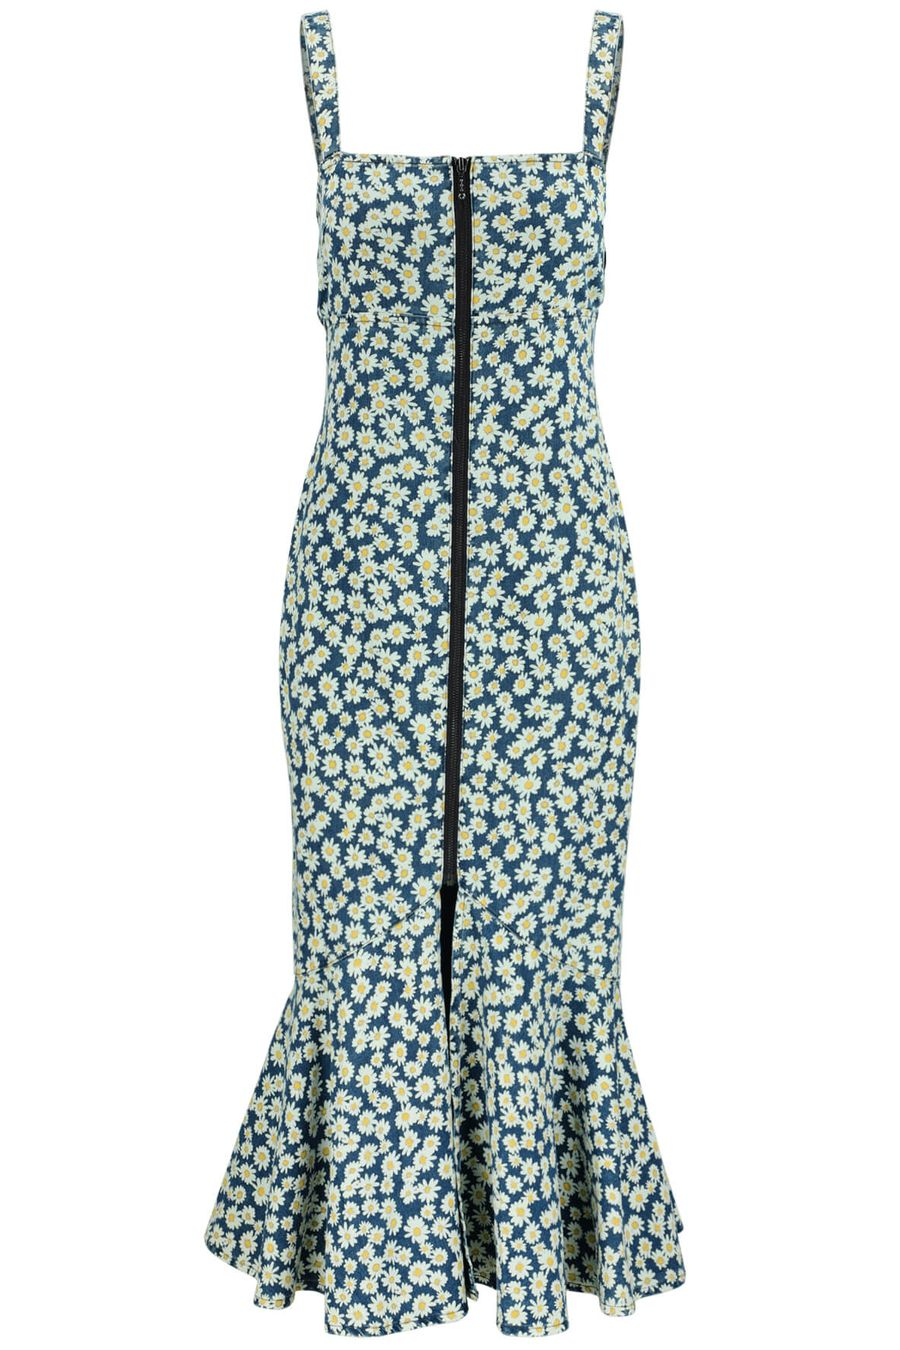 finders-keepers-Ruby Dress-Navy-Daisy-1